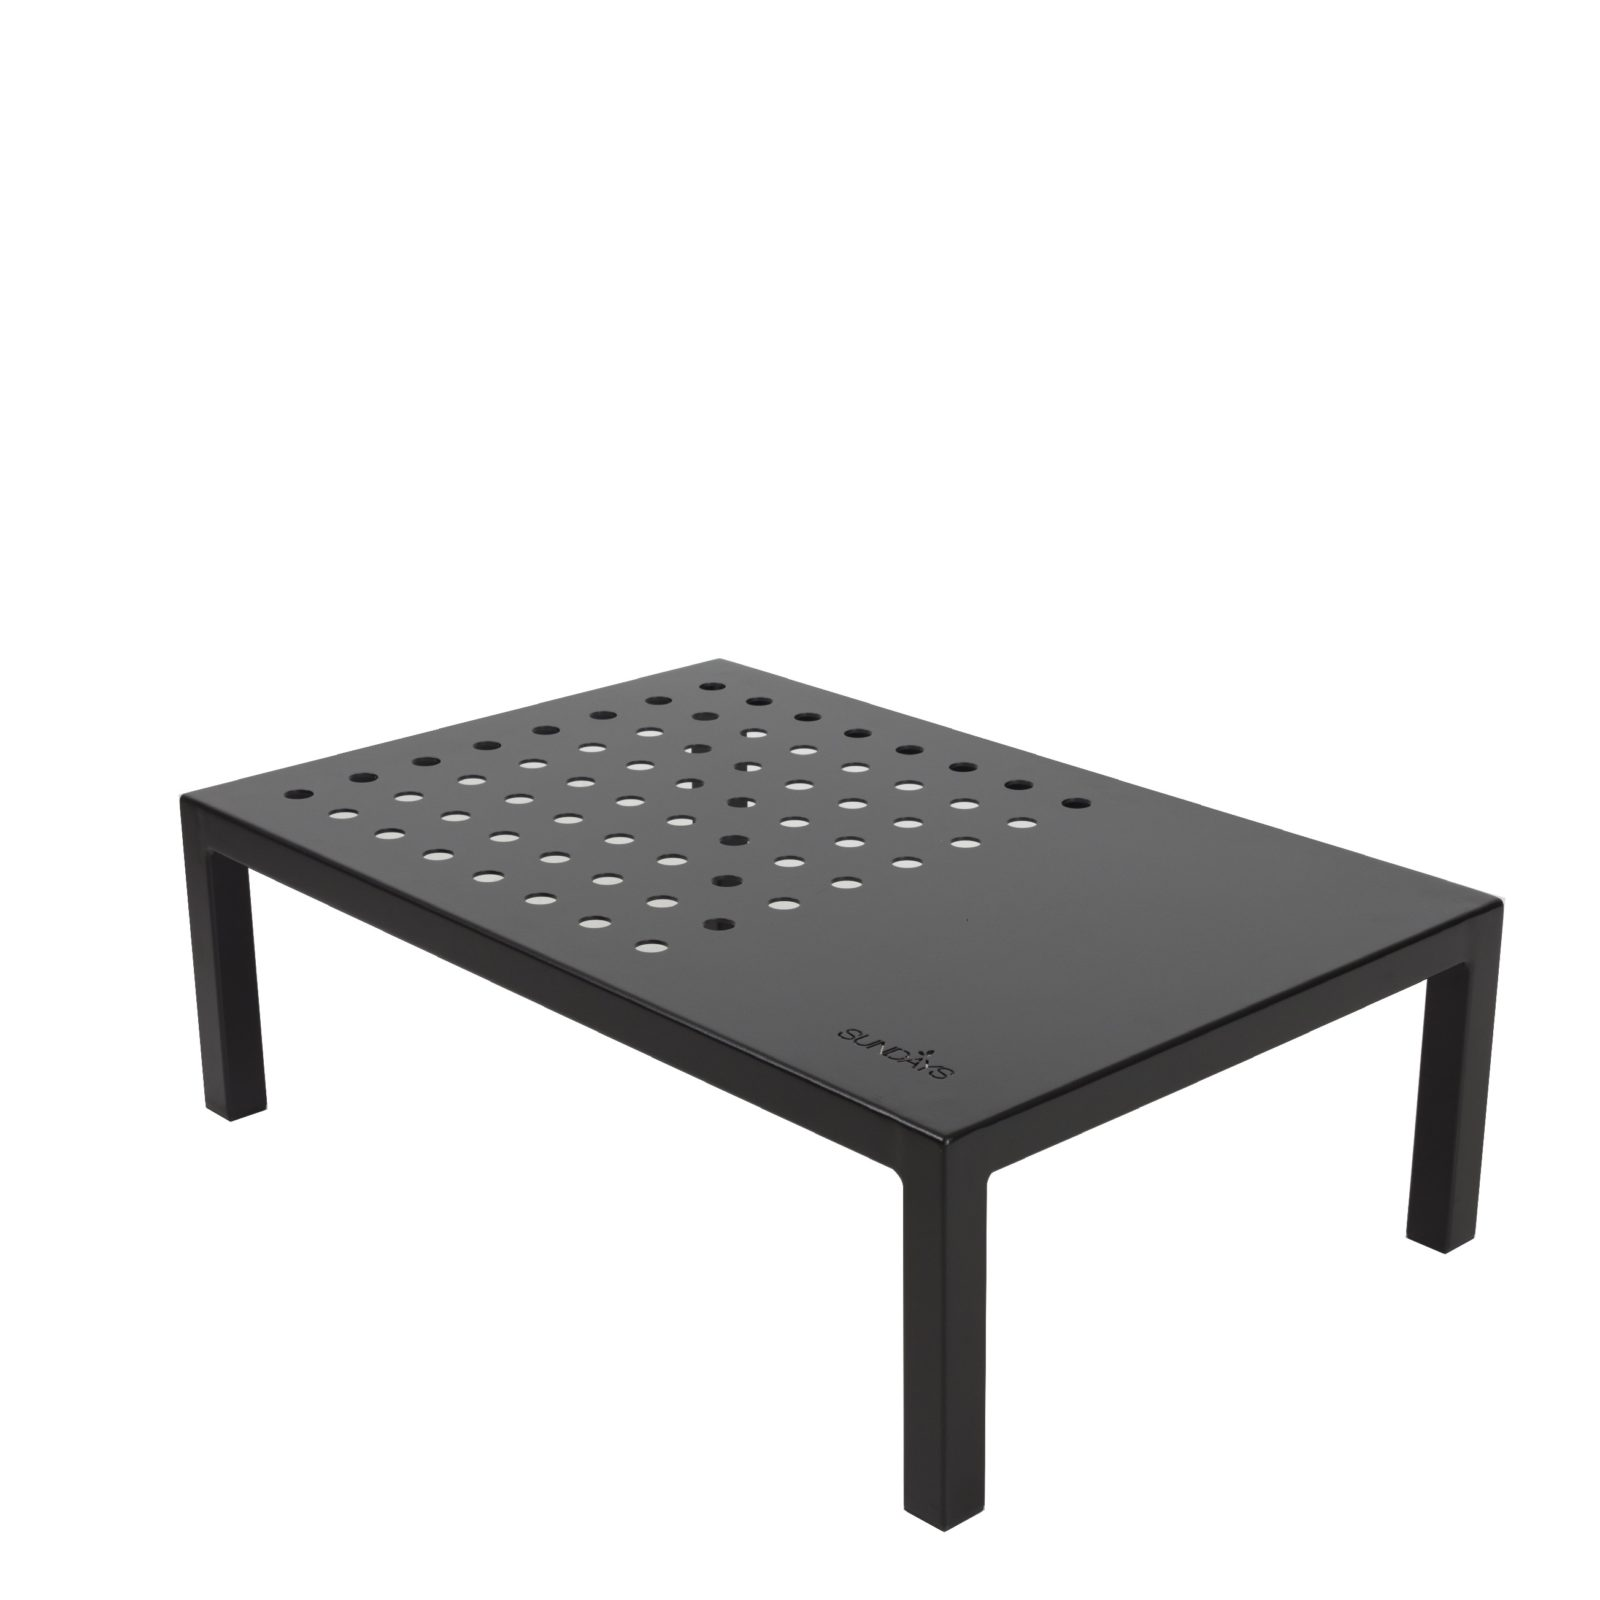 Sundays loungetable lav 100403 kull alt